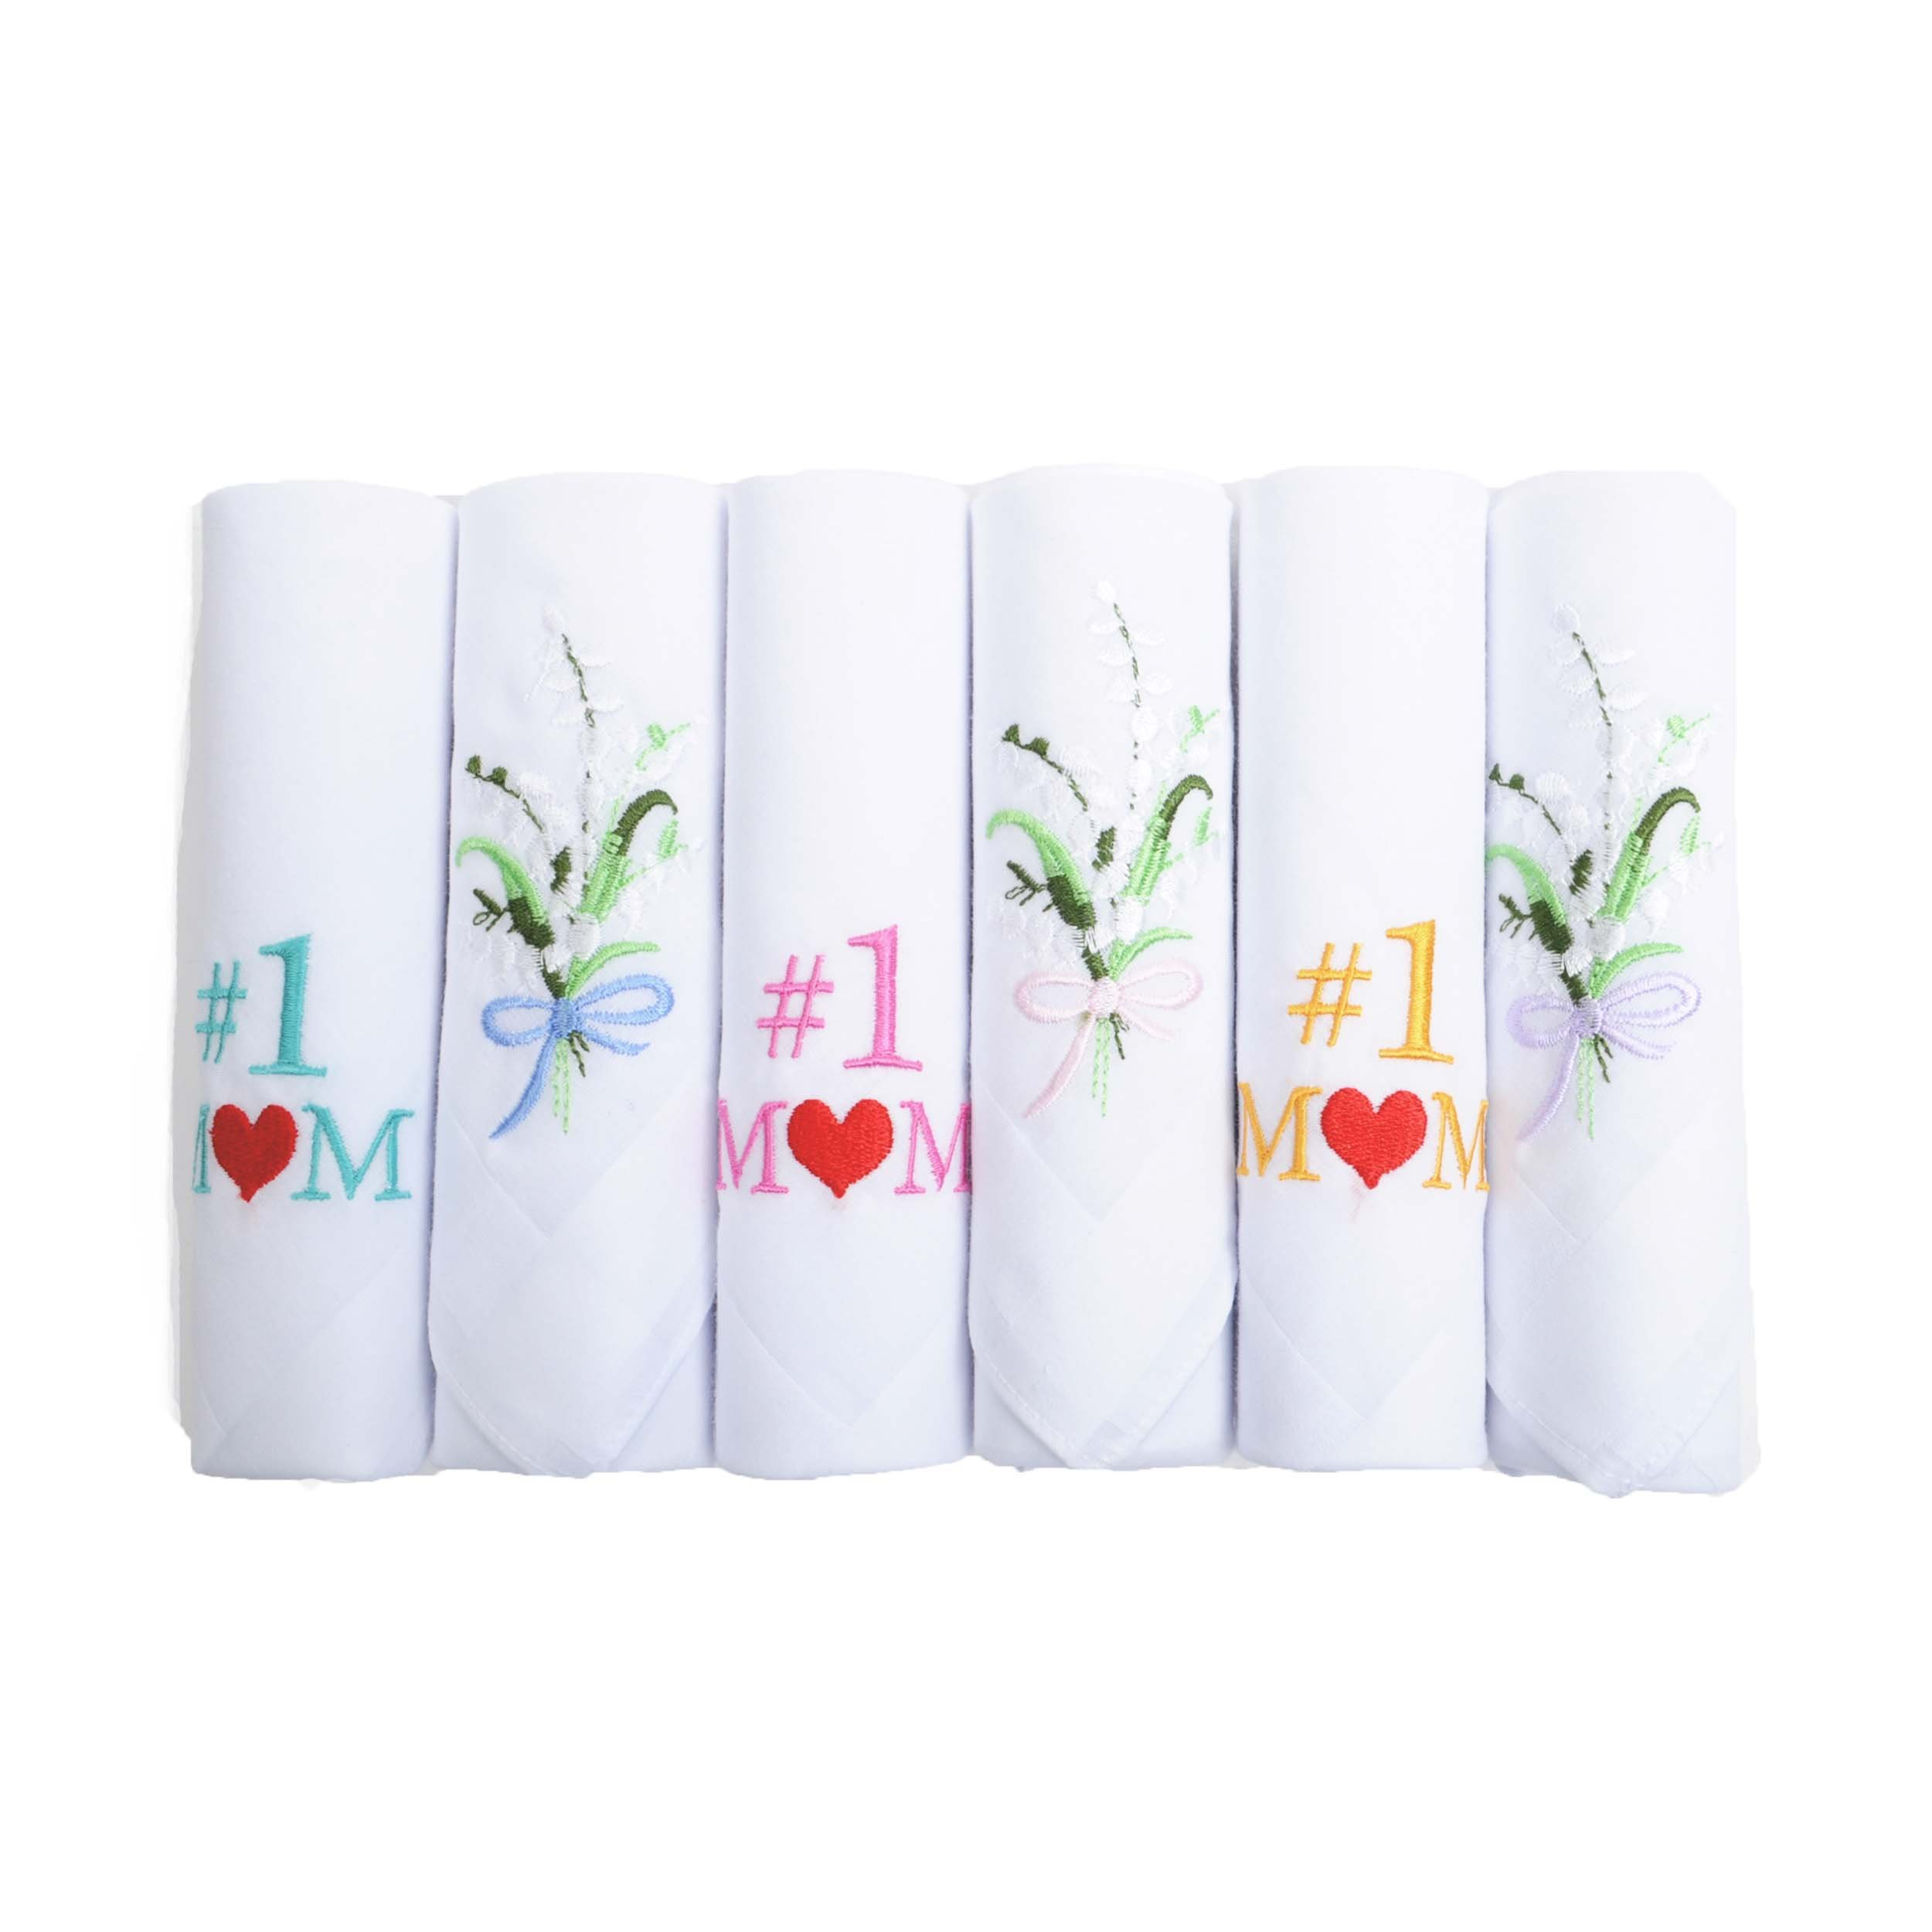 Boxed-Gifts #1 Mom 6pc Assorted Handkerchief Set